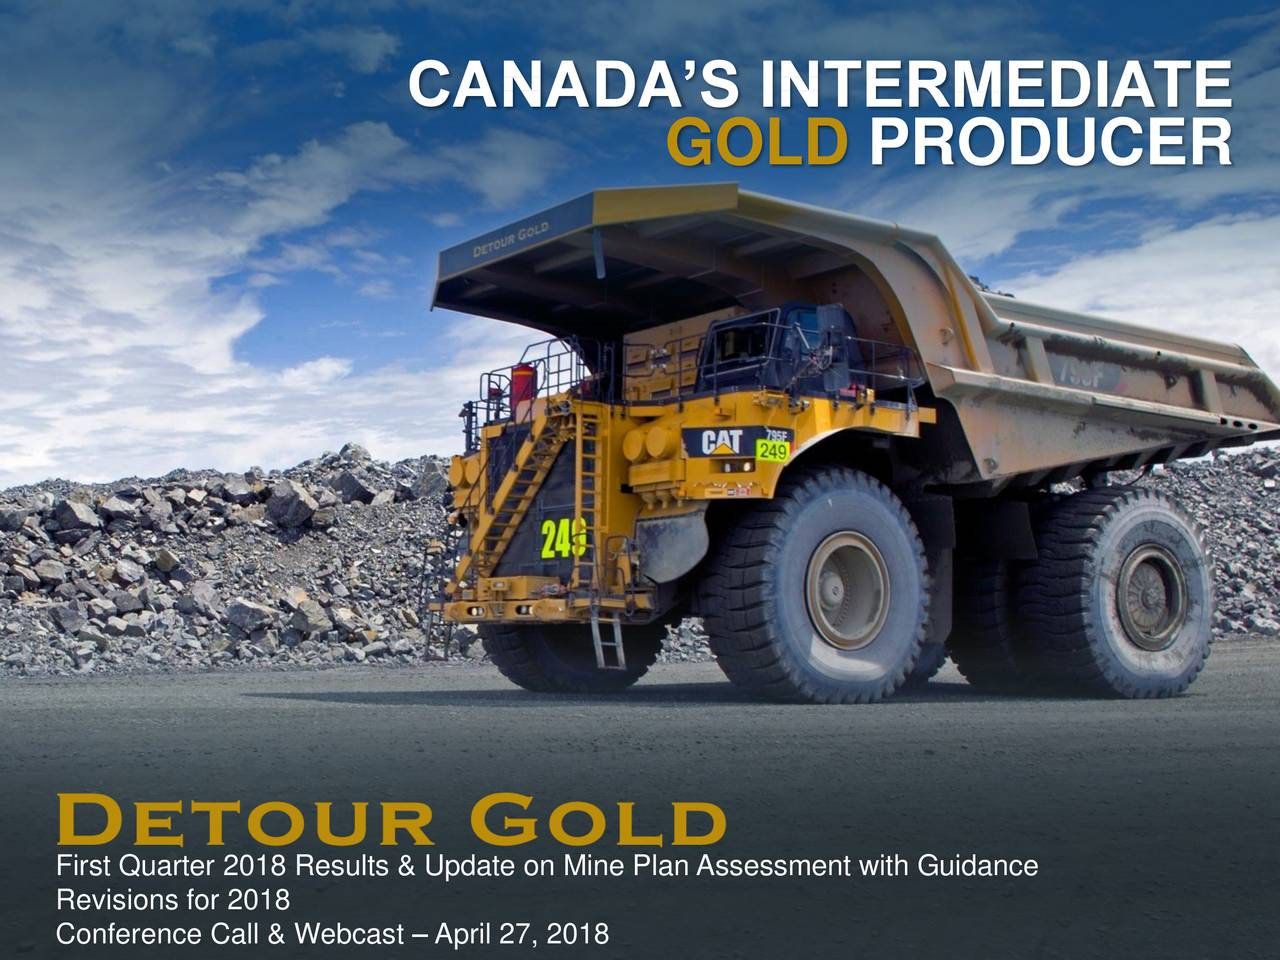 GOLD PRODUCER First Quarter 2018 Results & Update on Mine Plan Assessment with Guidance Revisions for 2018 1